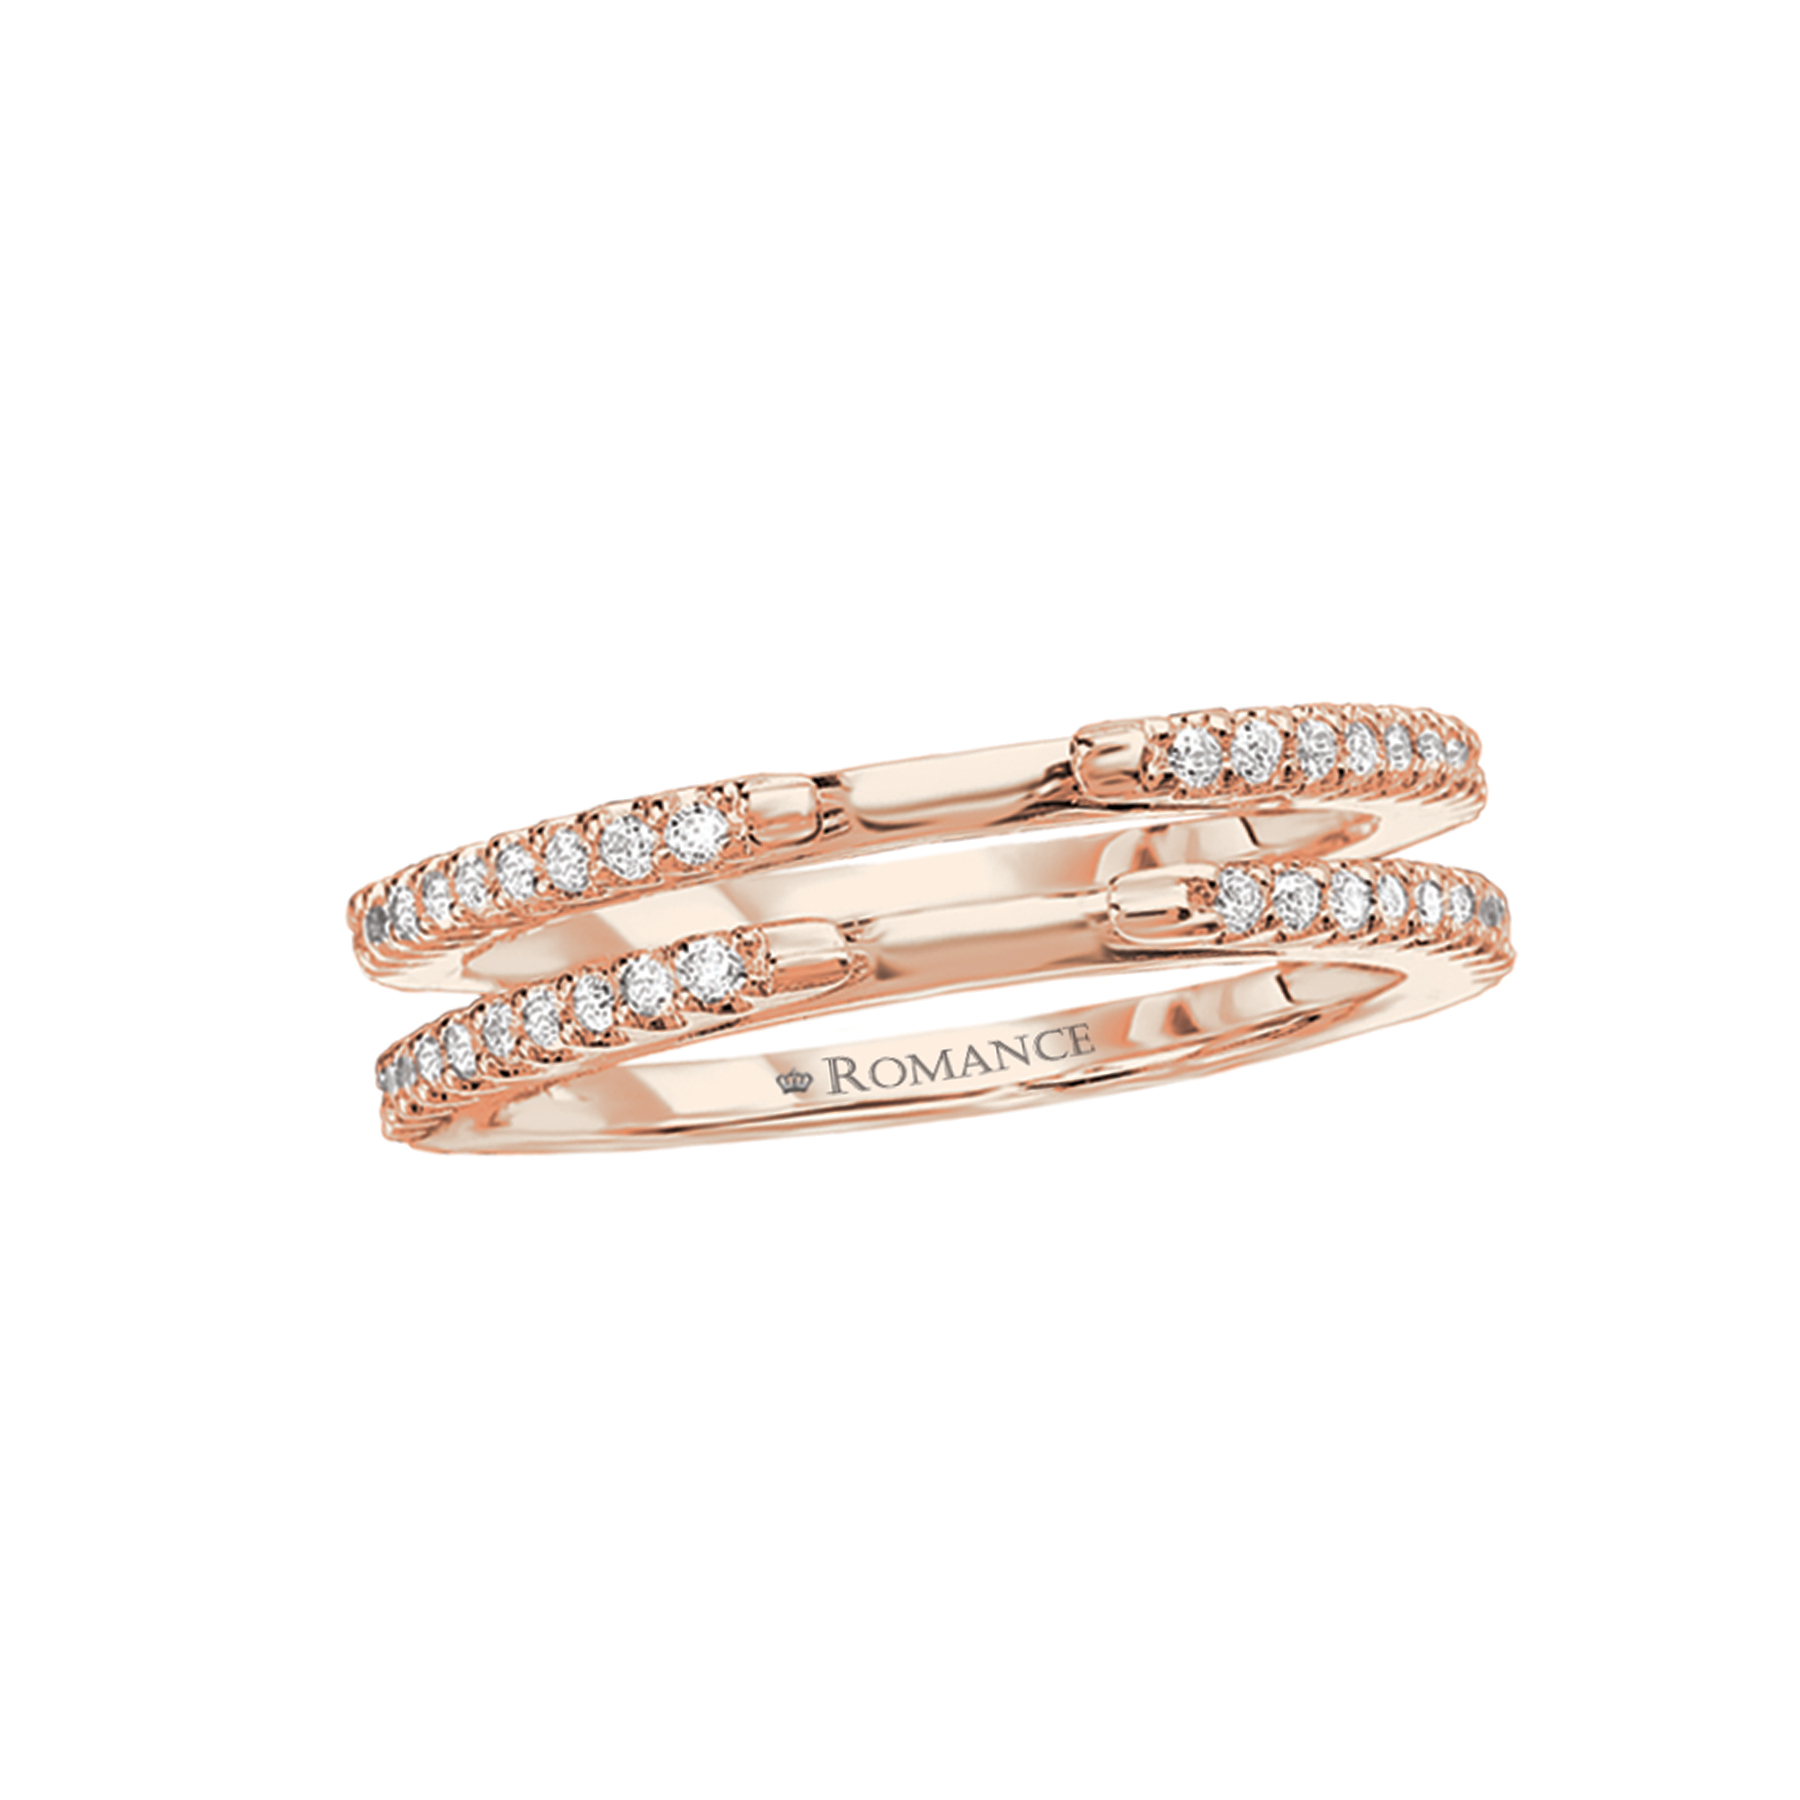 Romance Wedding Bands 117314-WRAPR product image